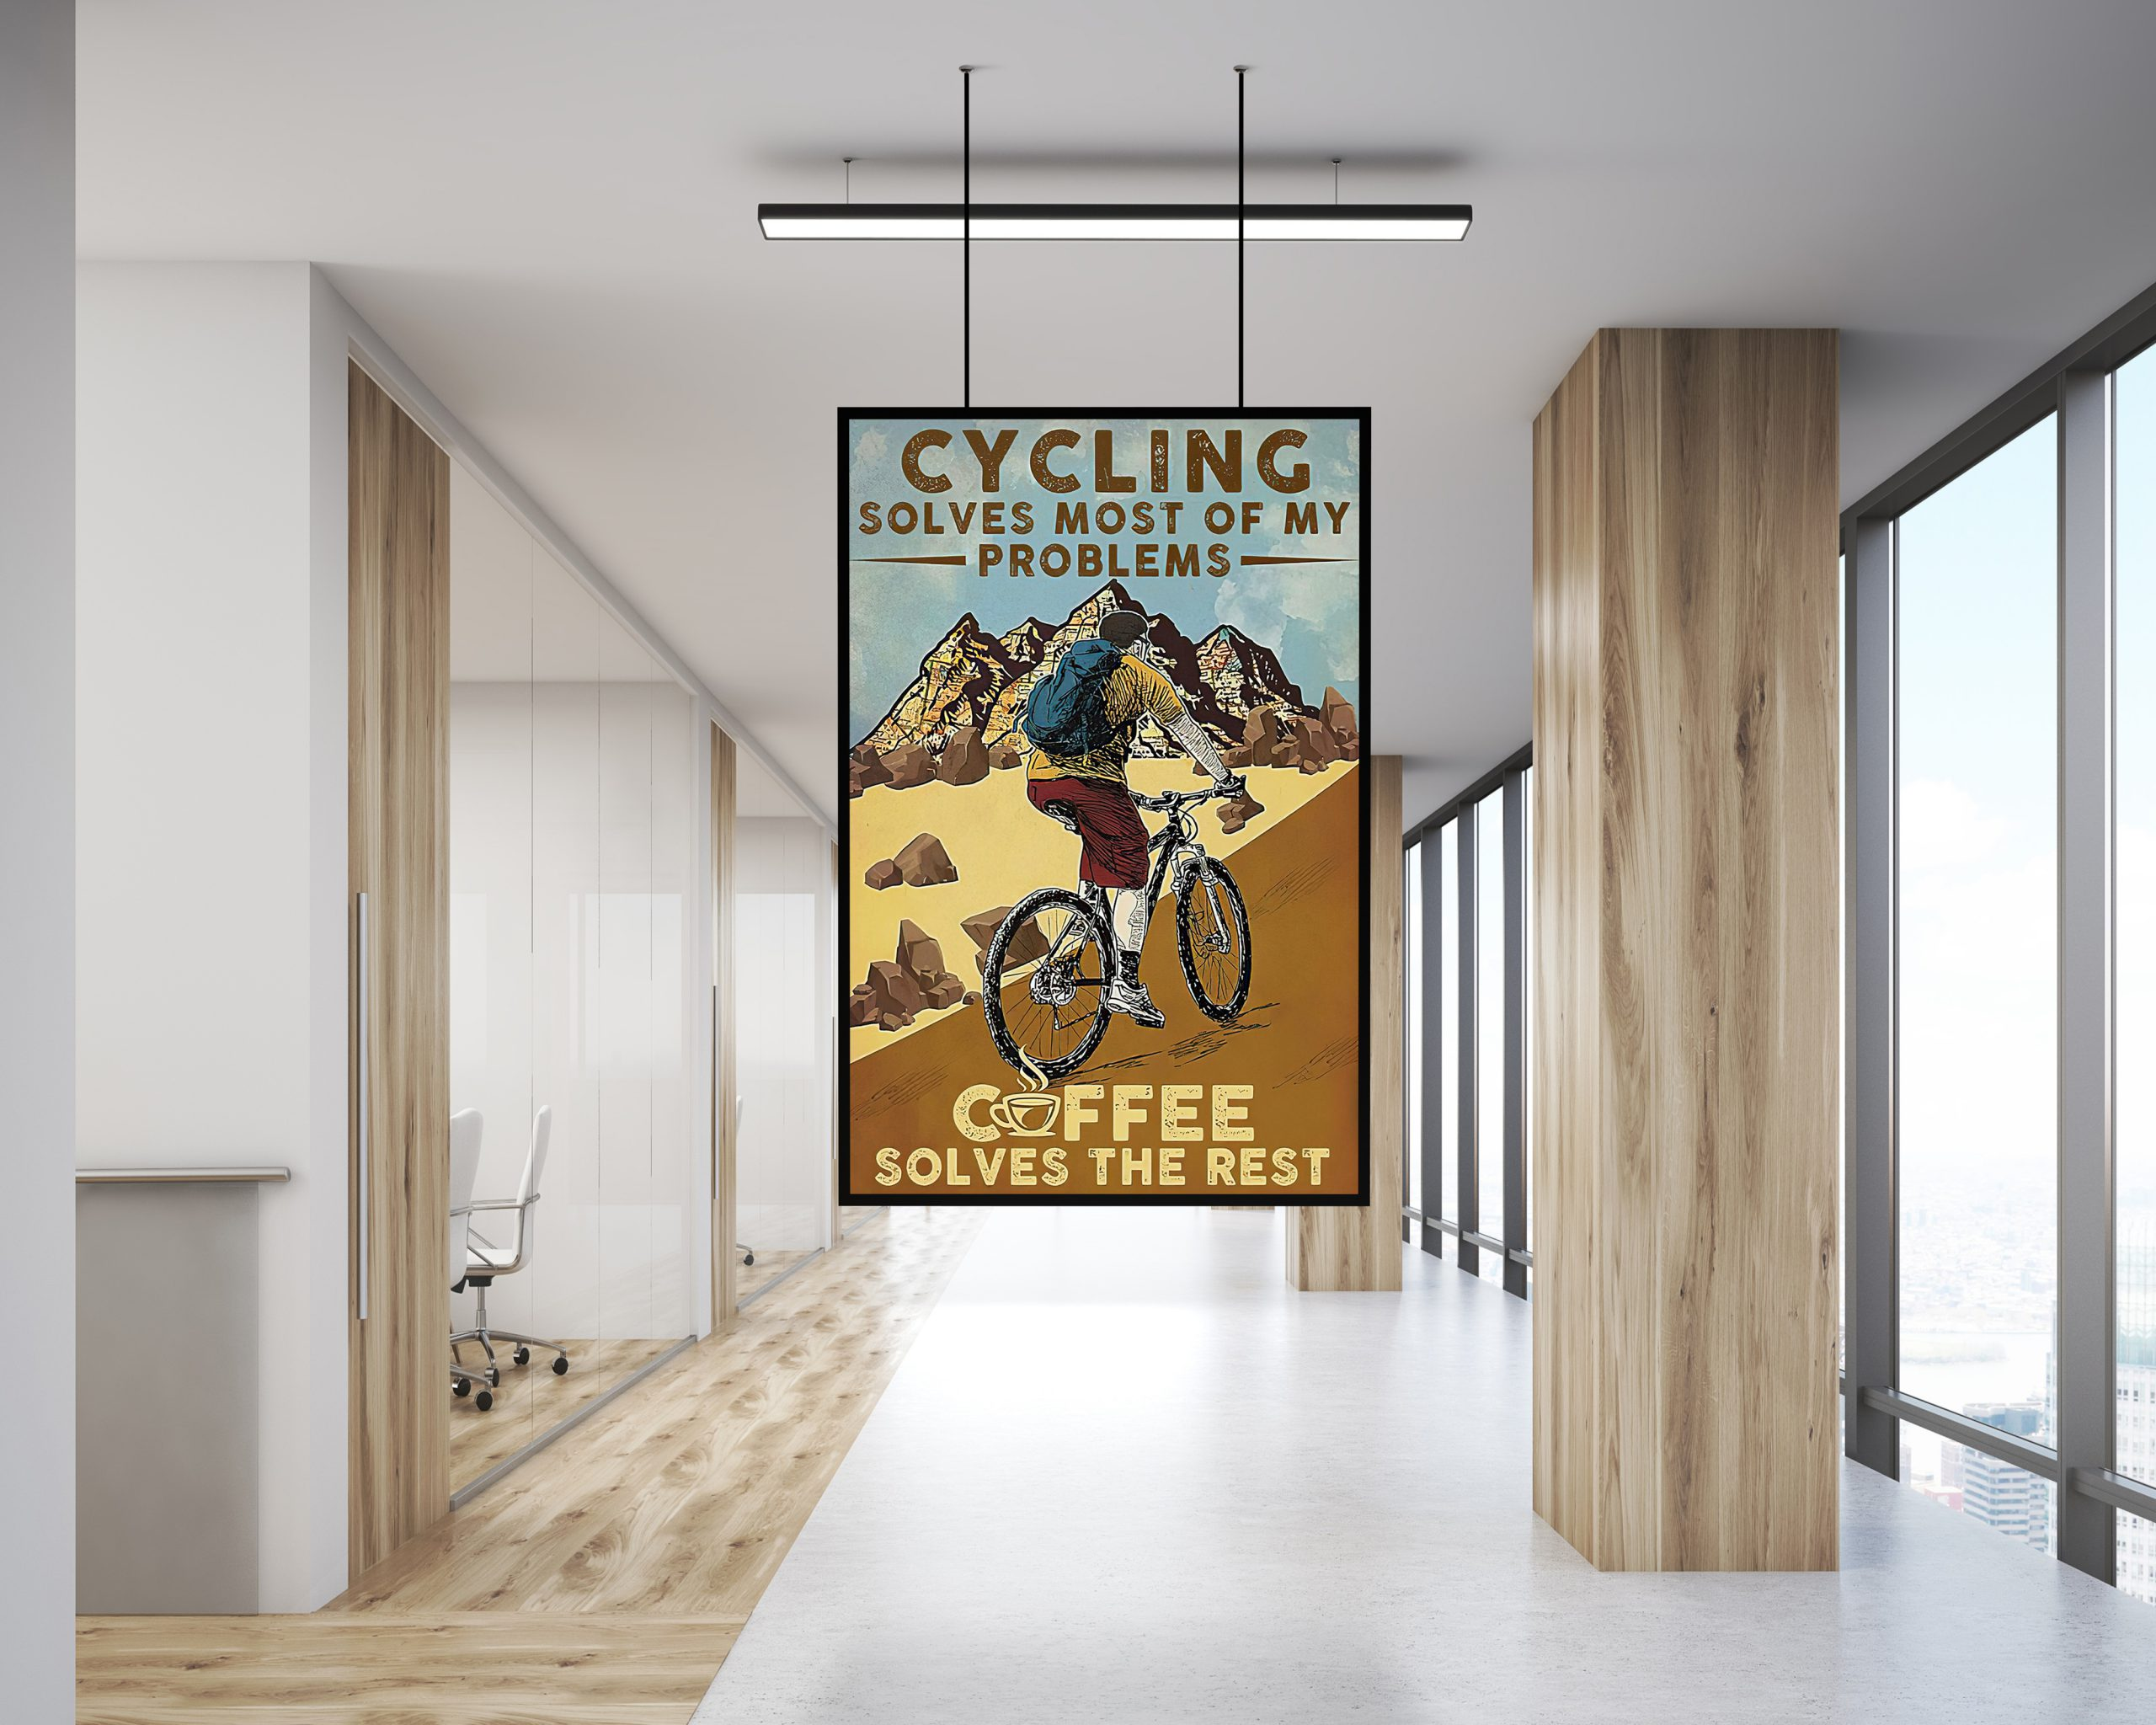 Cycling Solves Most Of My Problems Coffee Solves The Rest poster 2